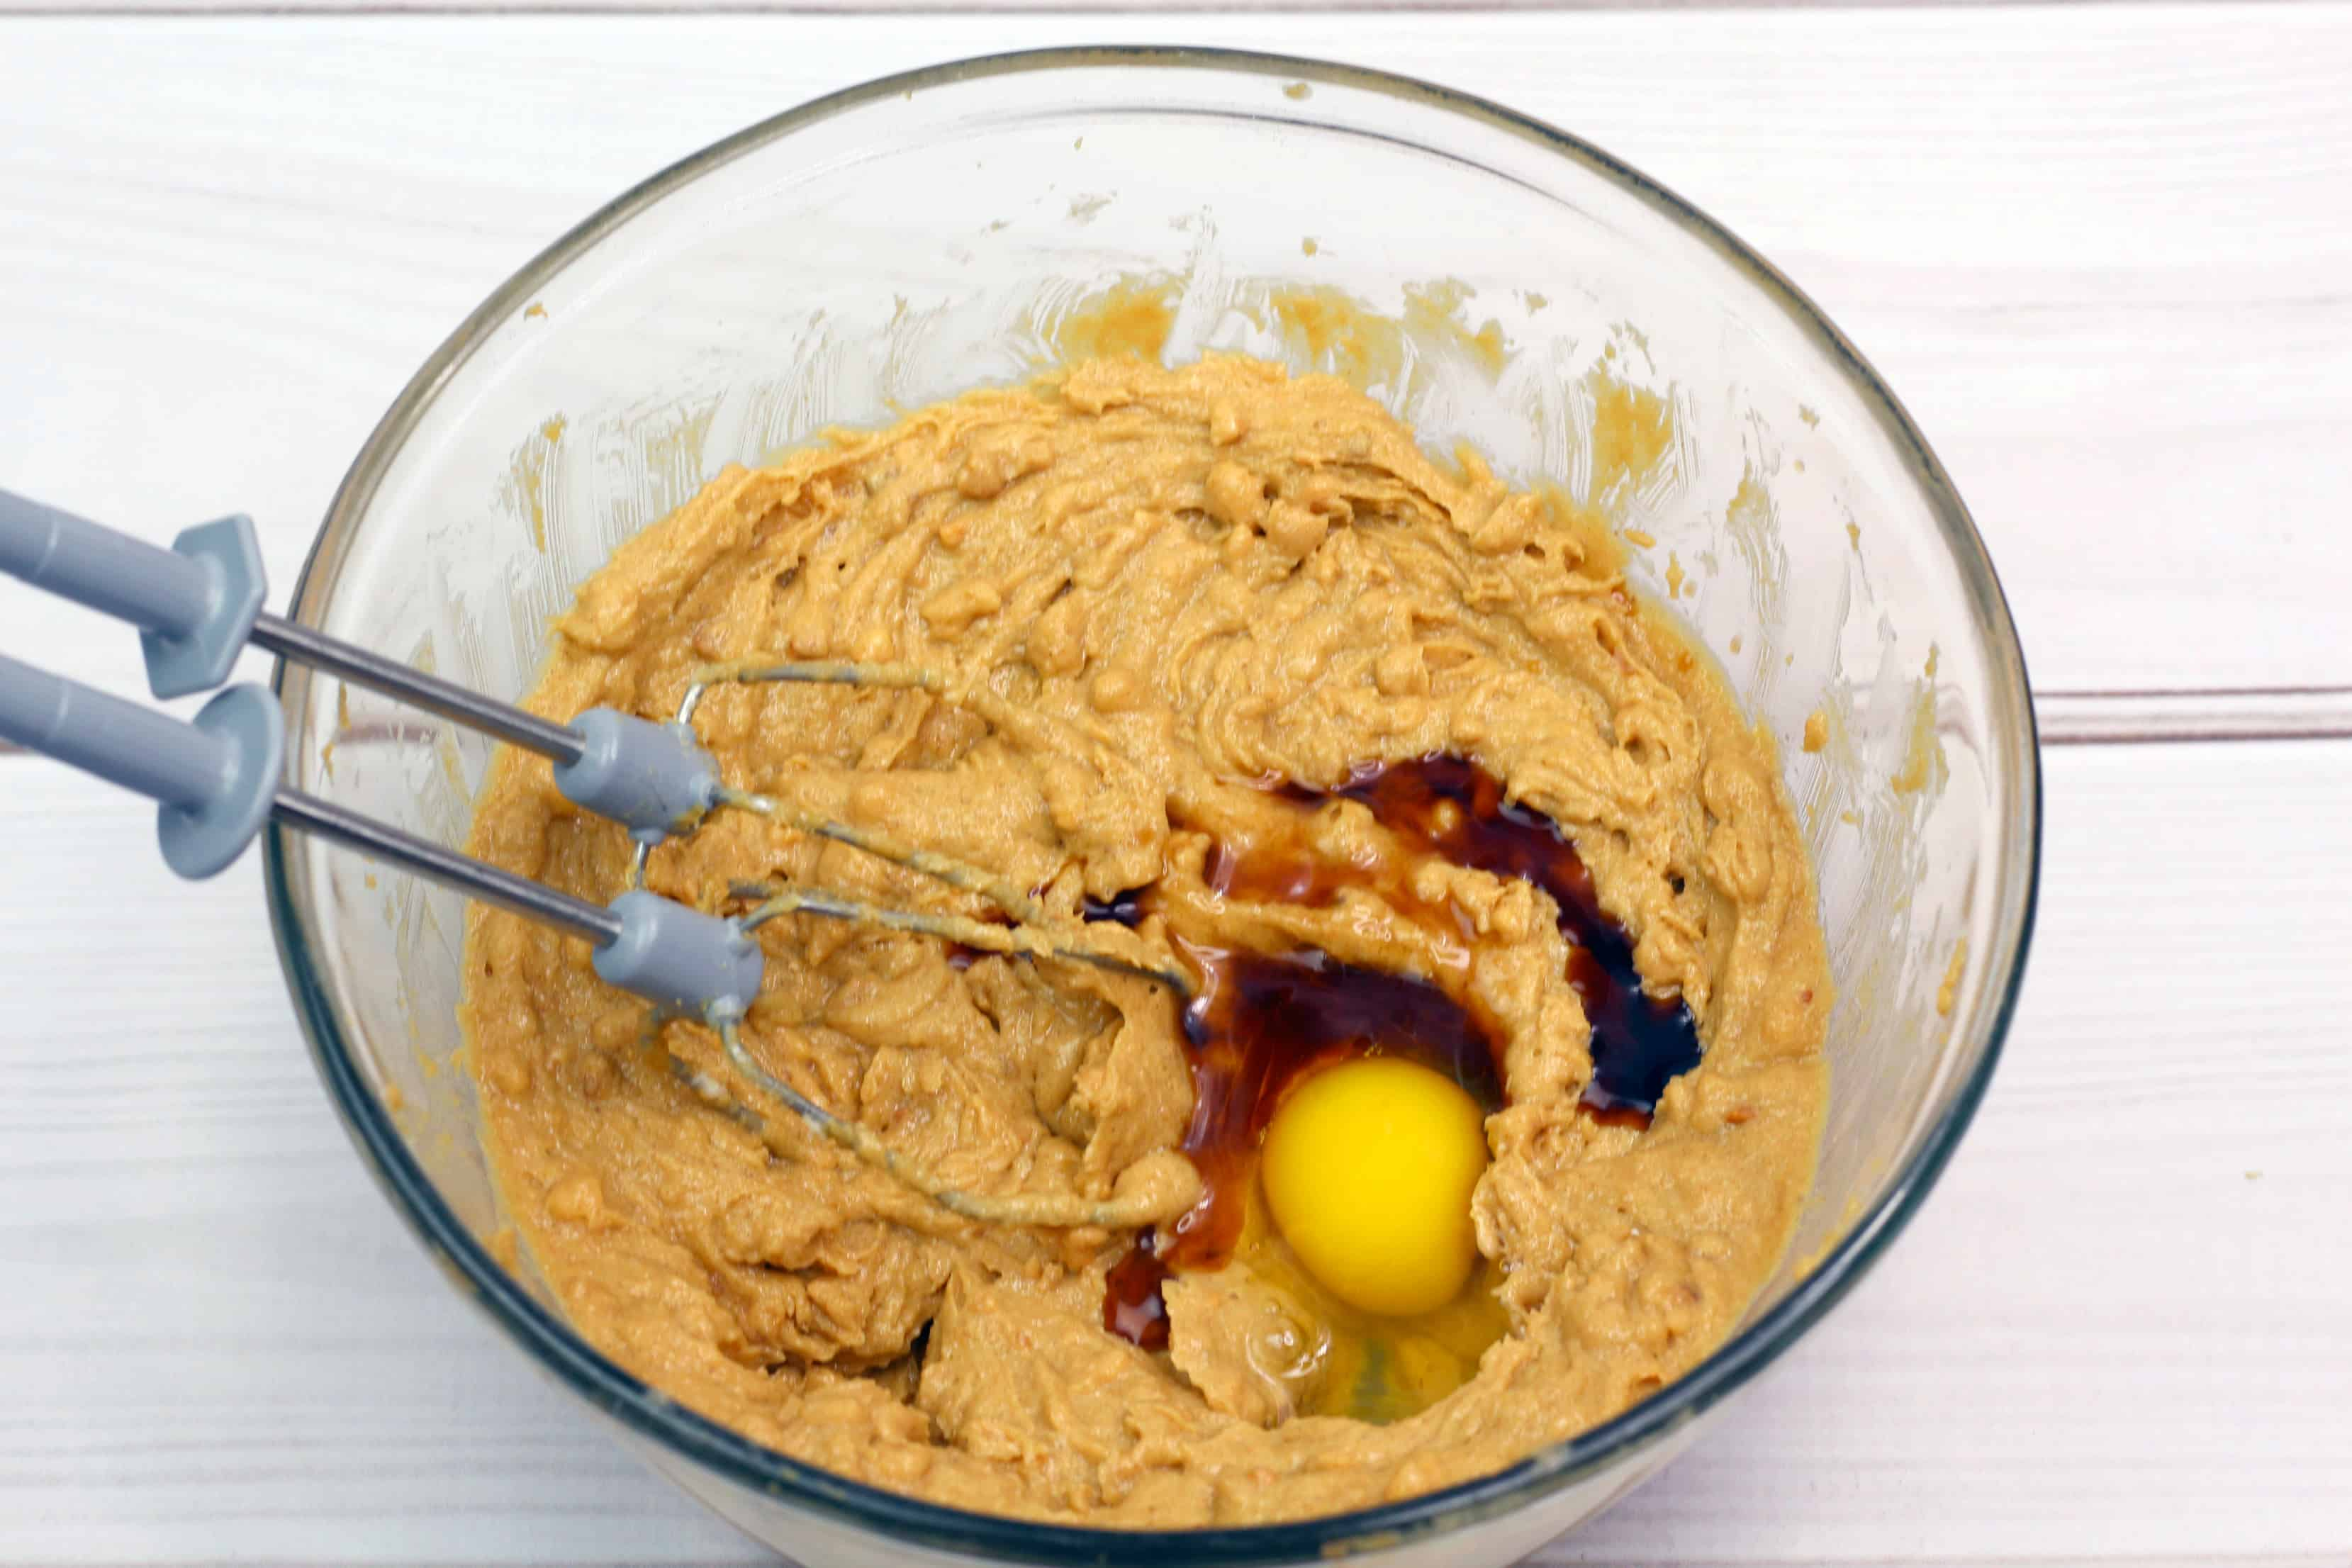 mix together peanut butter and egg